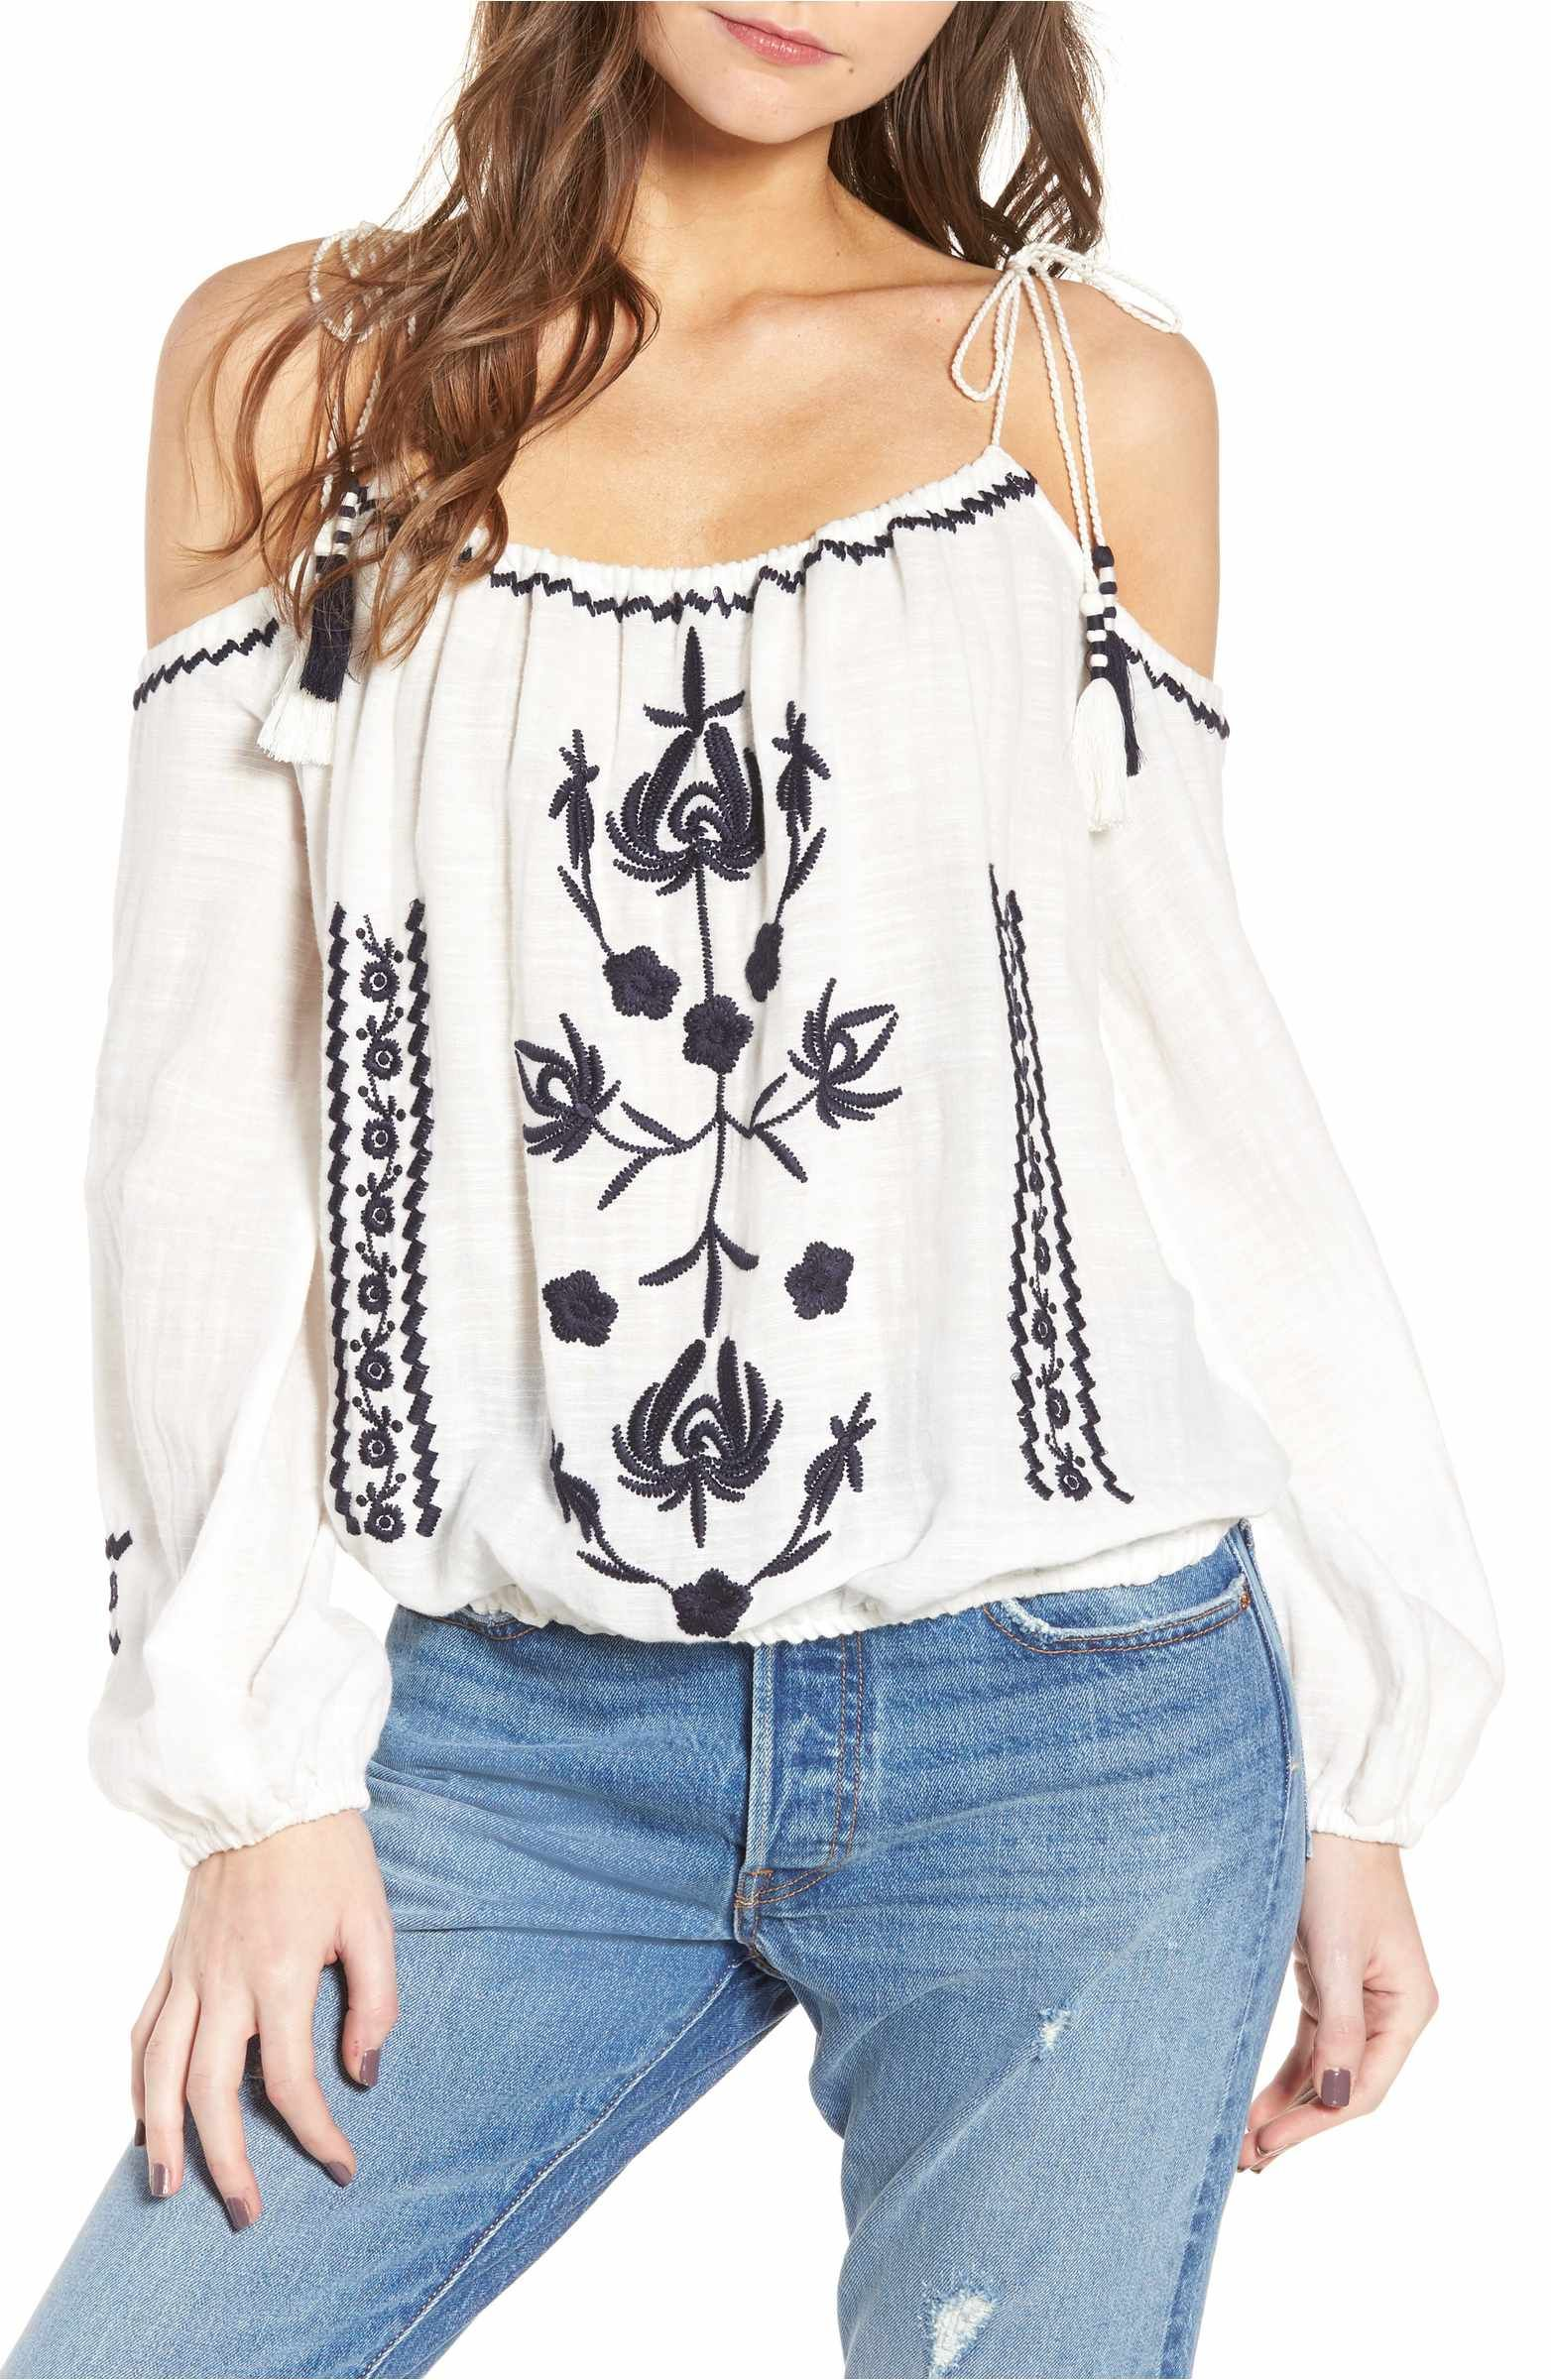 81cac98825695c Main Image - BP. Embroidered Tassel Cold Shoulder Top